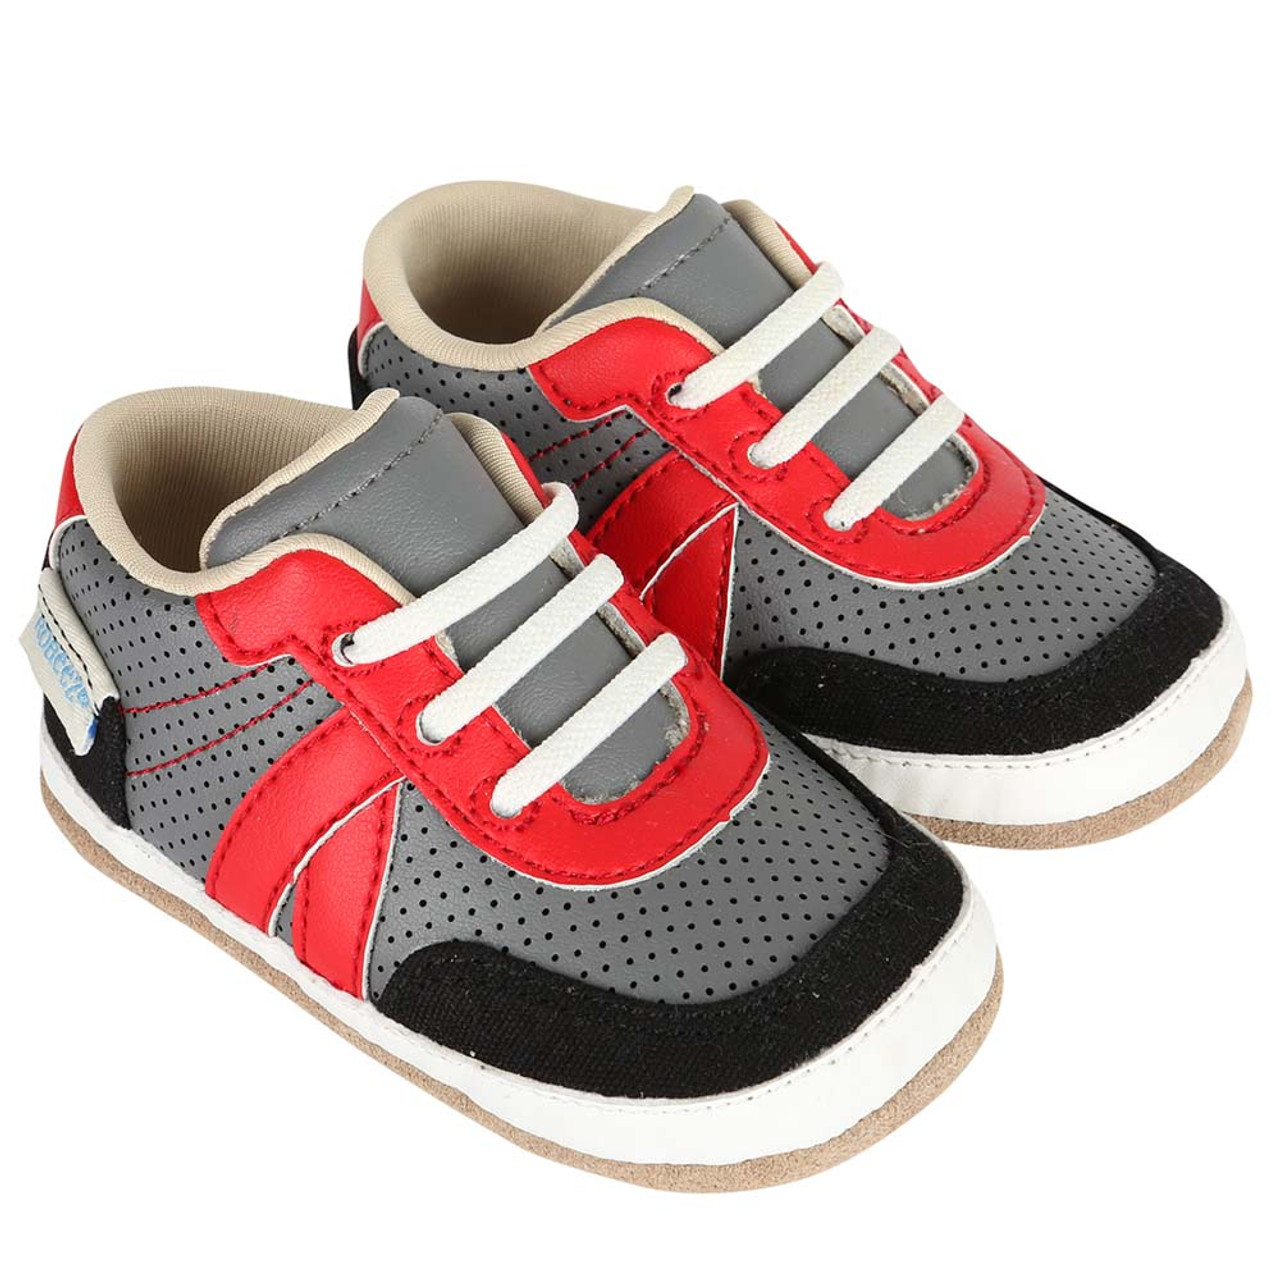 Baby Shoes Kickin Kyle Mini Shoez Baby Infant Toddler Robeez